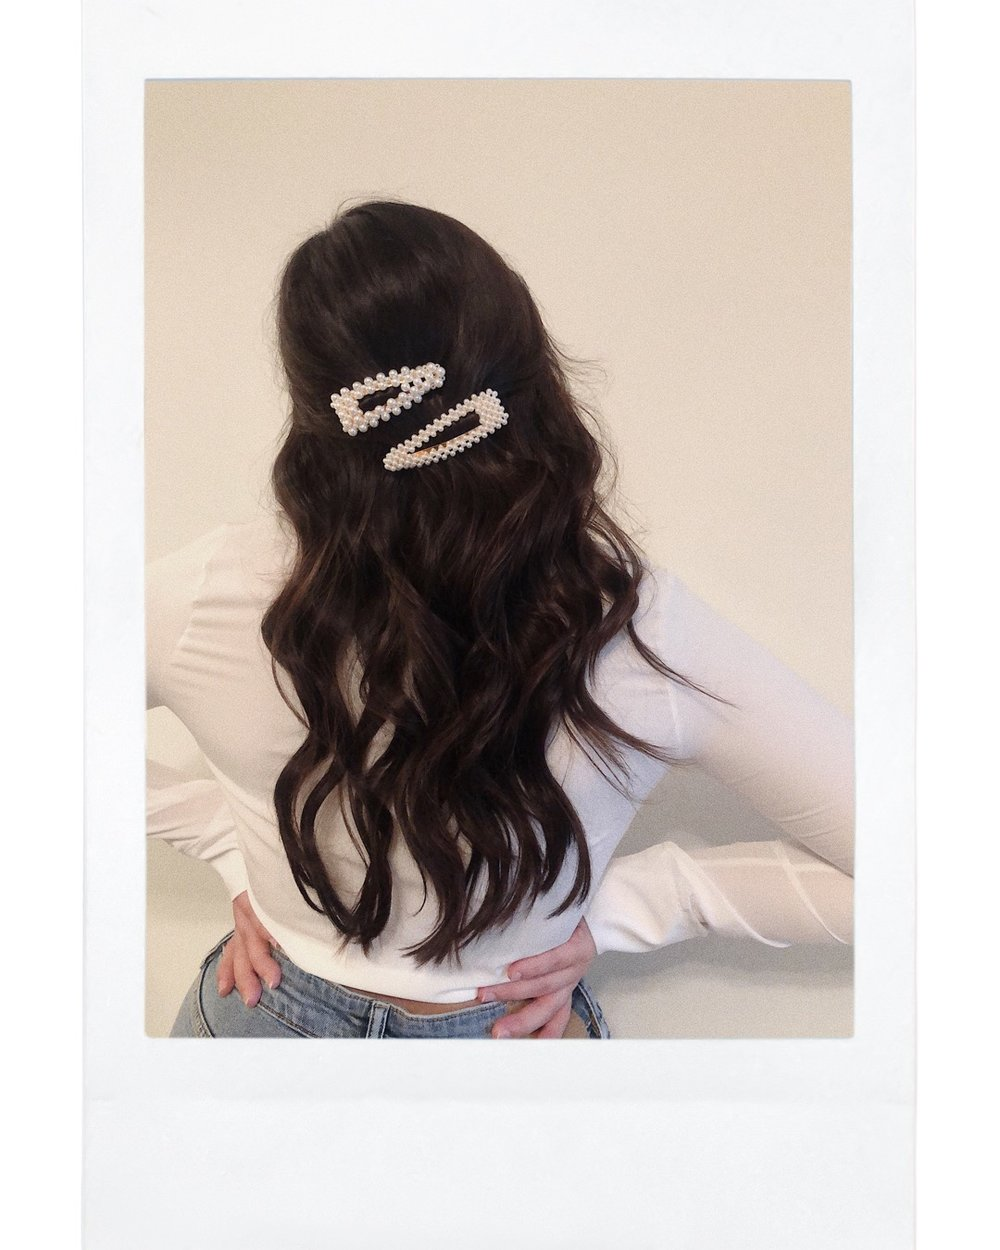 2 on the back - When you need to get your hair out of your face but still want to wear them! Grab a small section of your hair on both sides and use 1 clip per section (or else it will be too thick and won't hold).